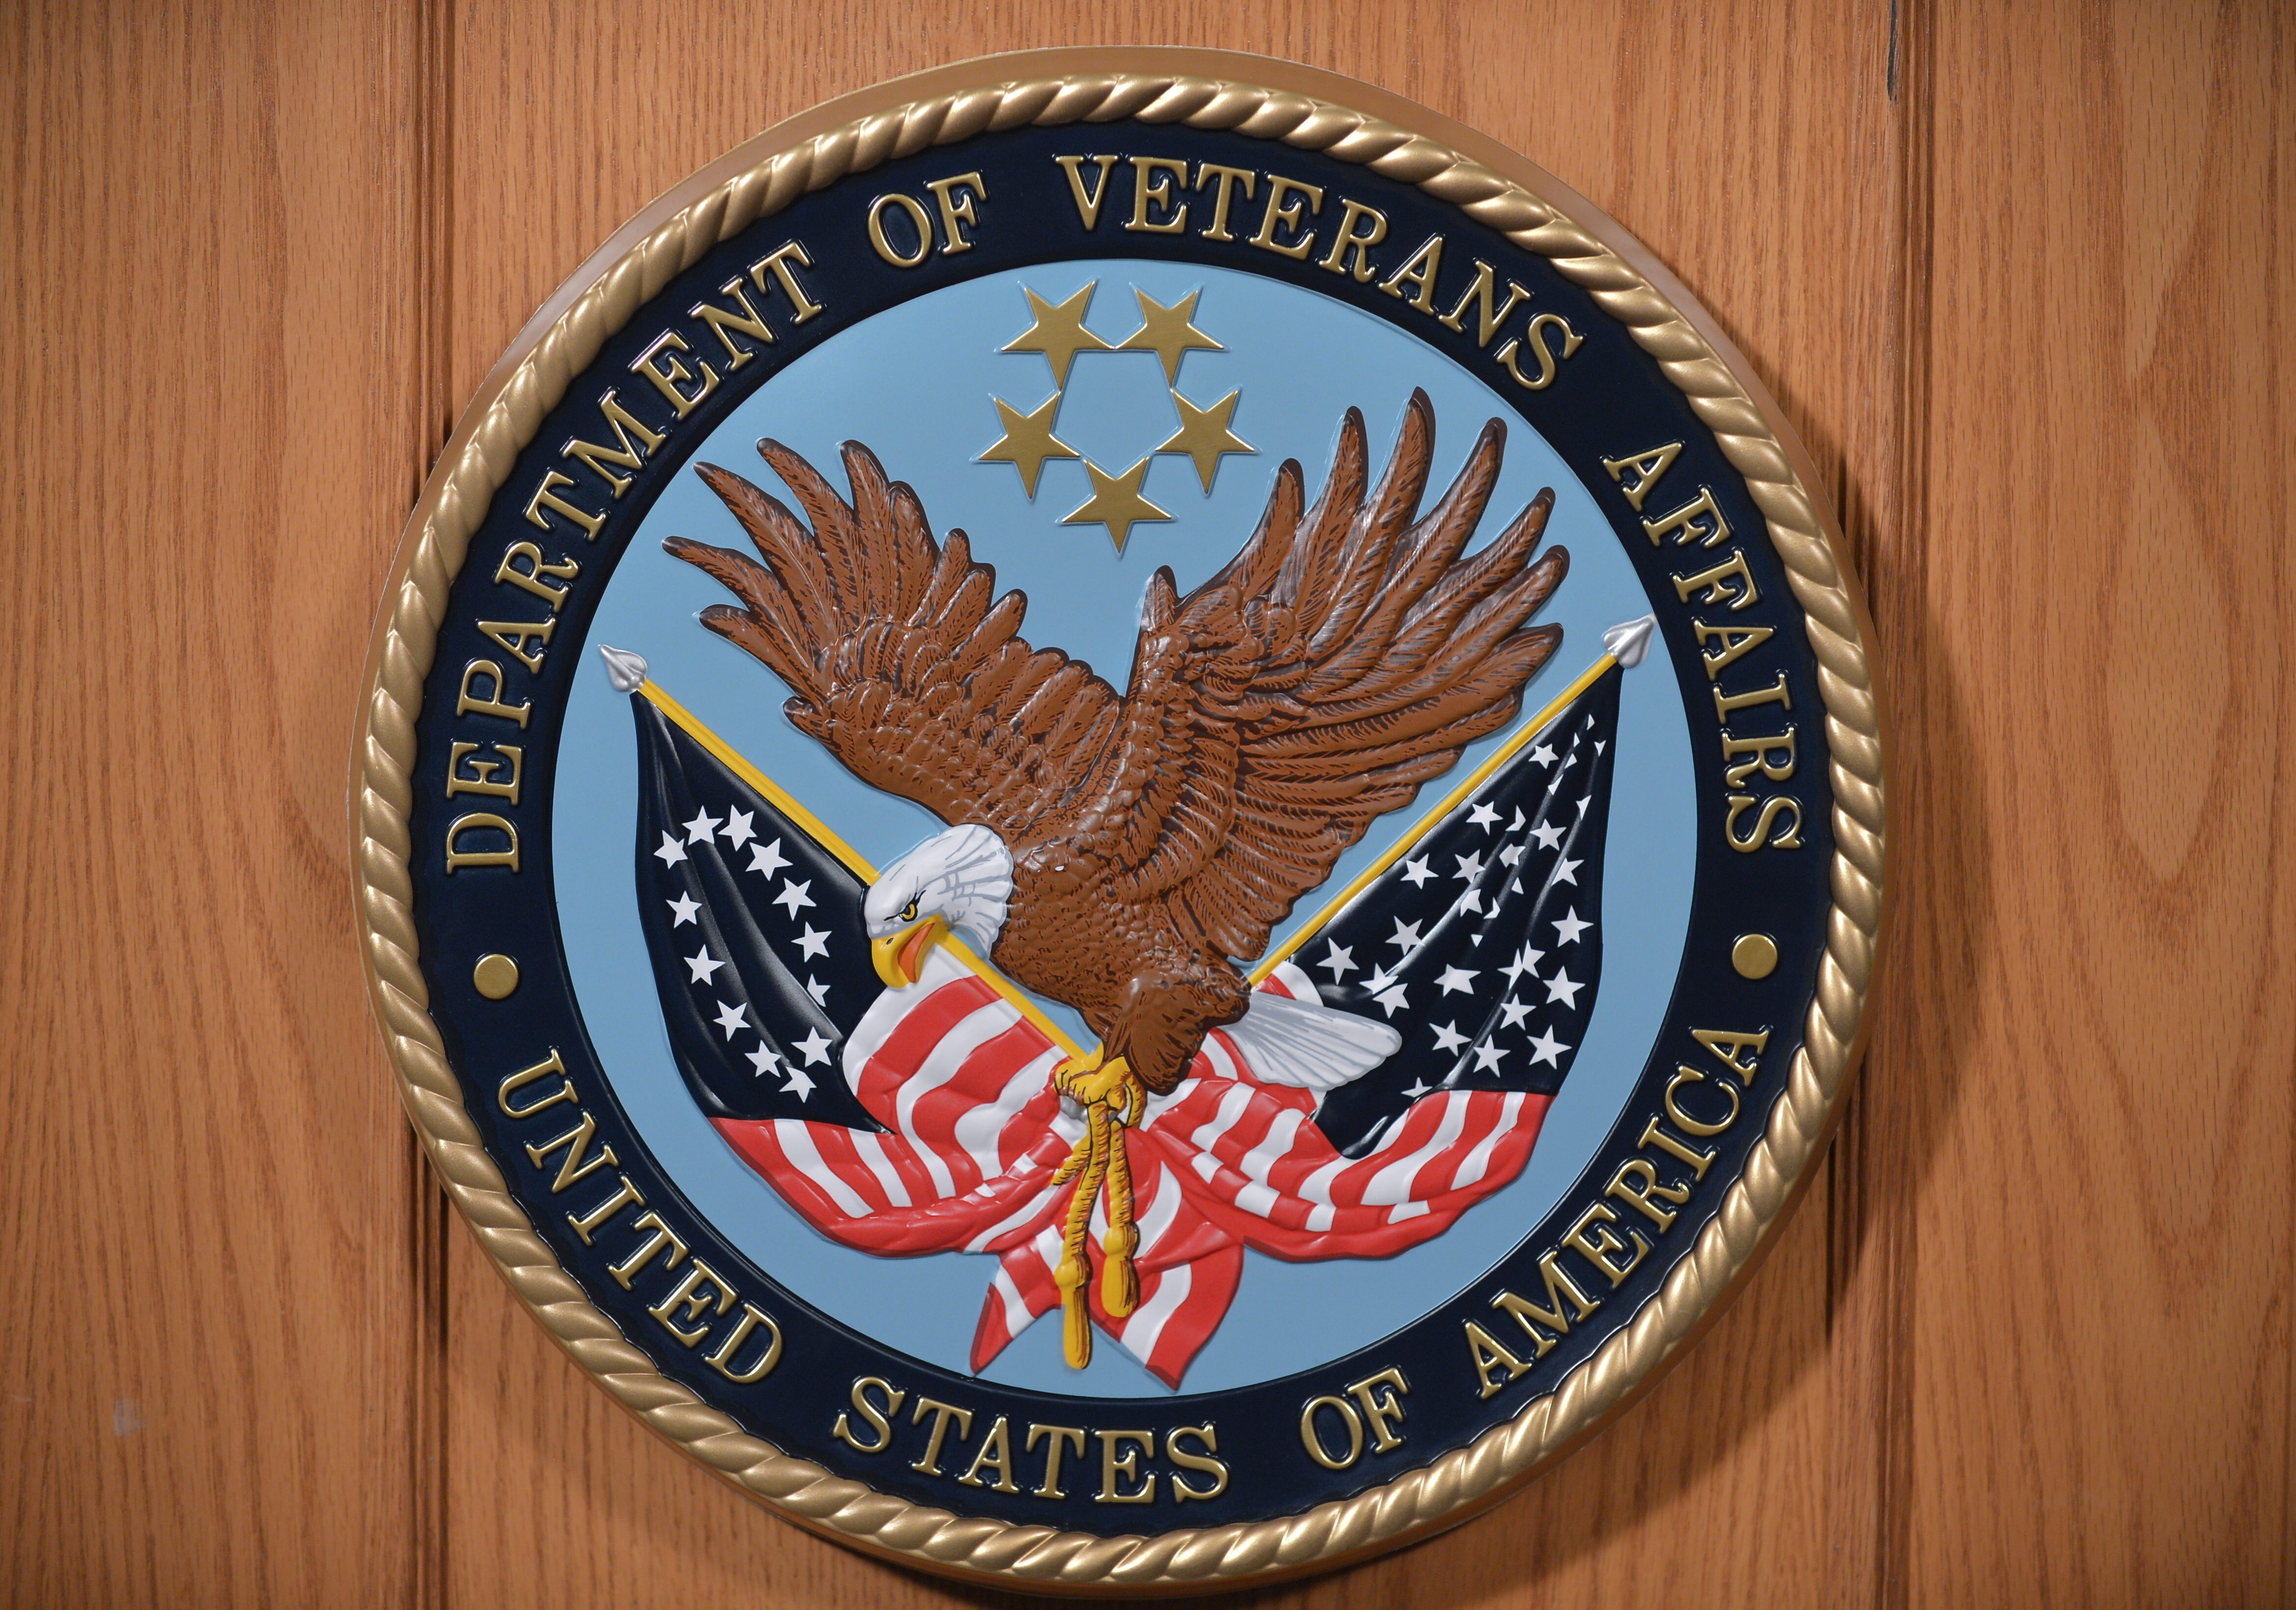 VA tells veterans discharged under 'don't ask, don't tell' they are eligible for all VA benefits